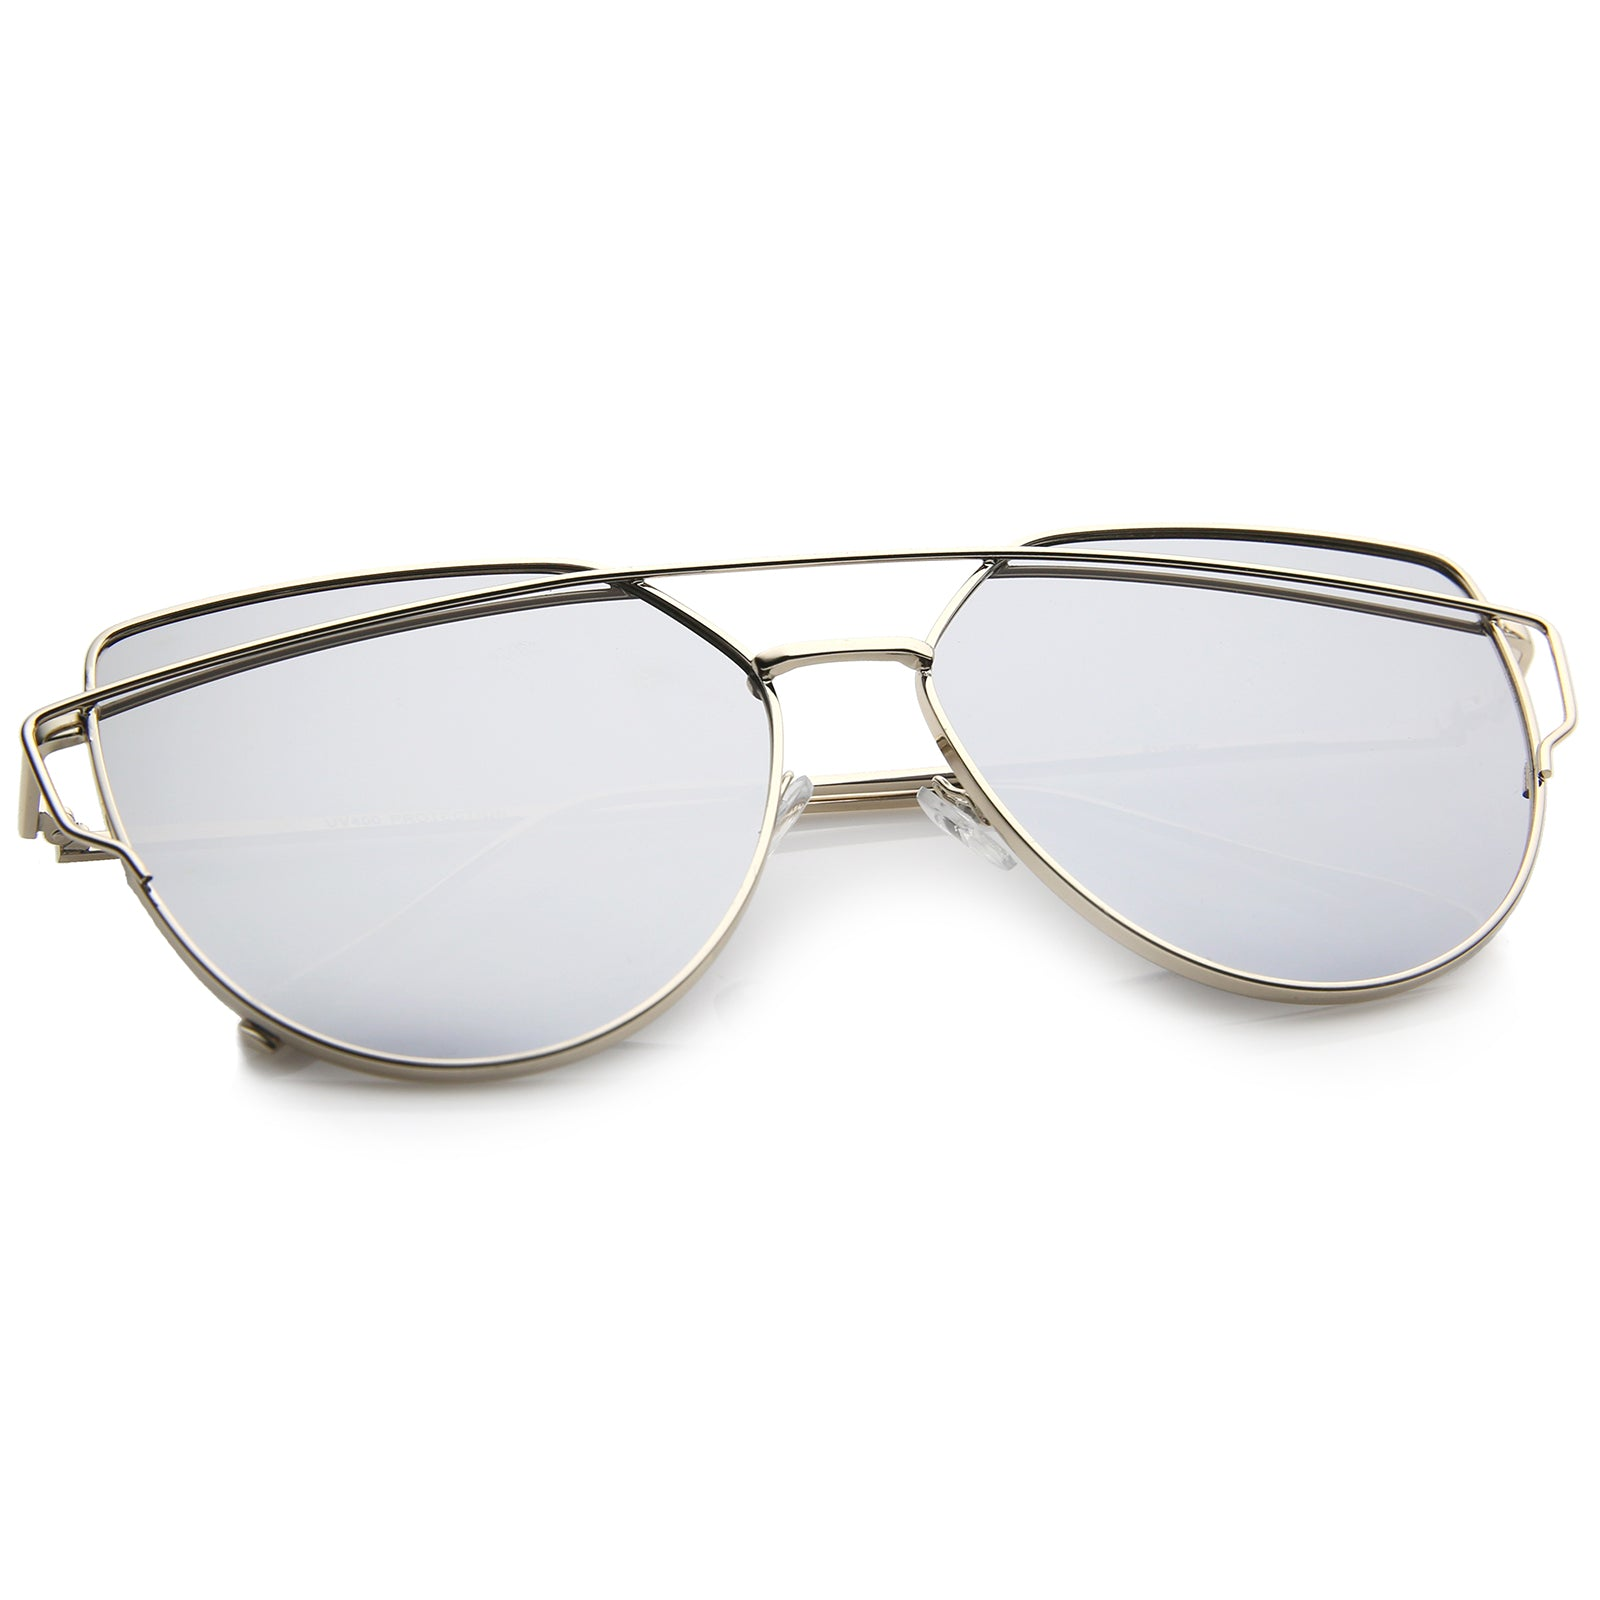 Oversize Metal Frame Thin Temple Color Mirror Flat Lens Aviator Sunglasses 62mm - sunglass.la - 8